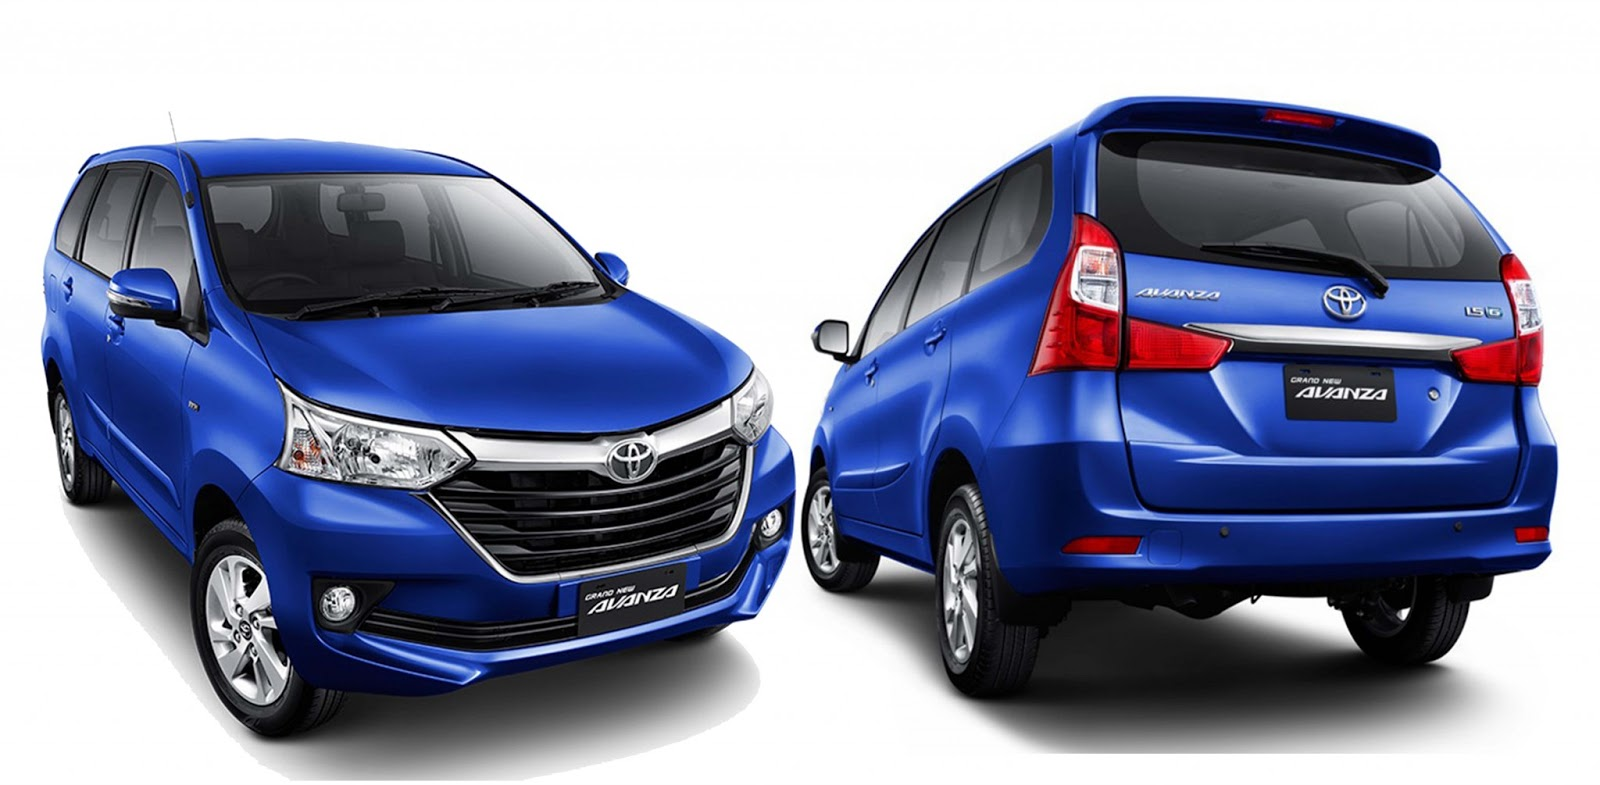 Kompresi Grand New Avanza 2016 Toyota Veloz 2018 Midnighthustlers